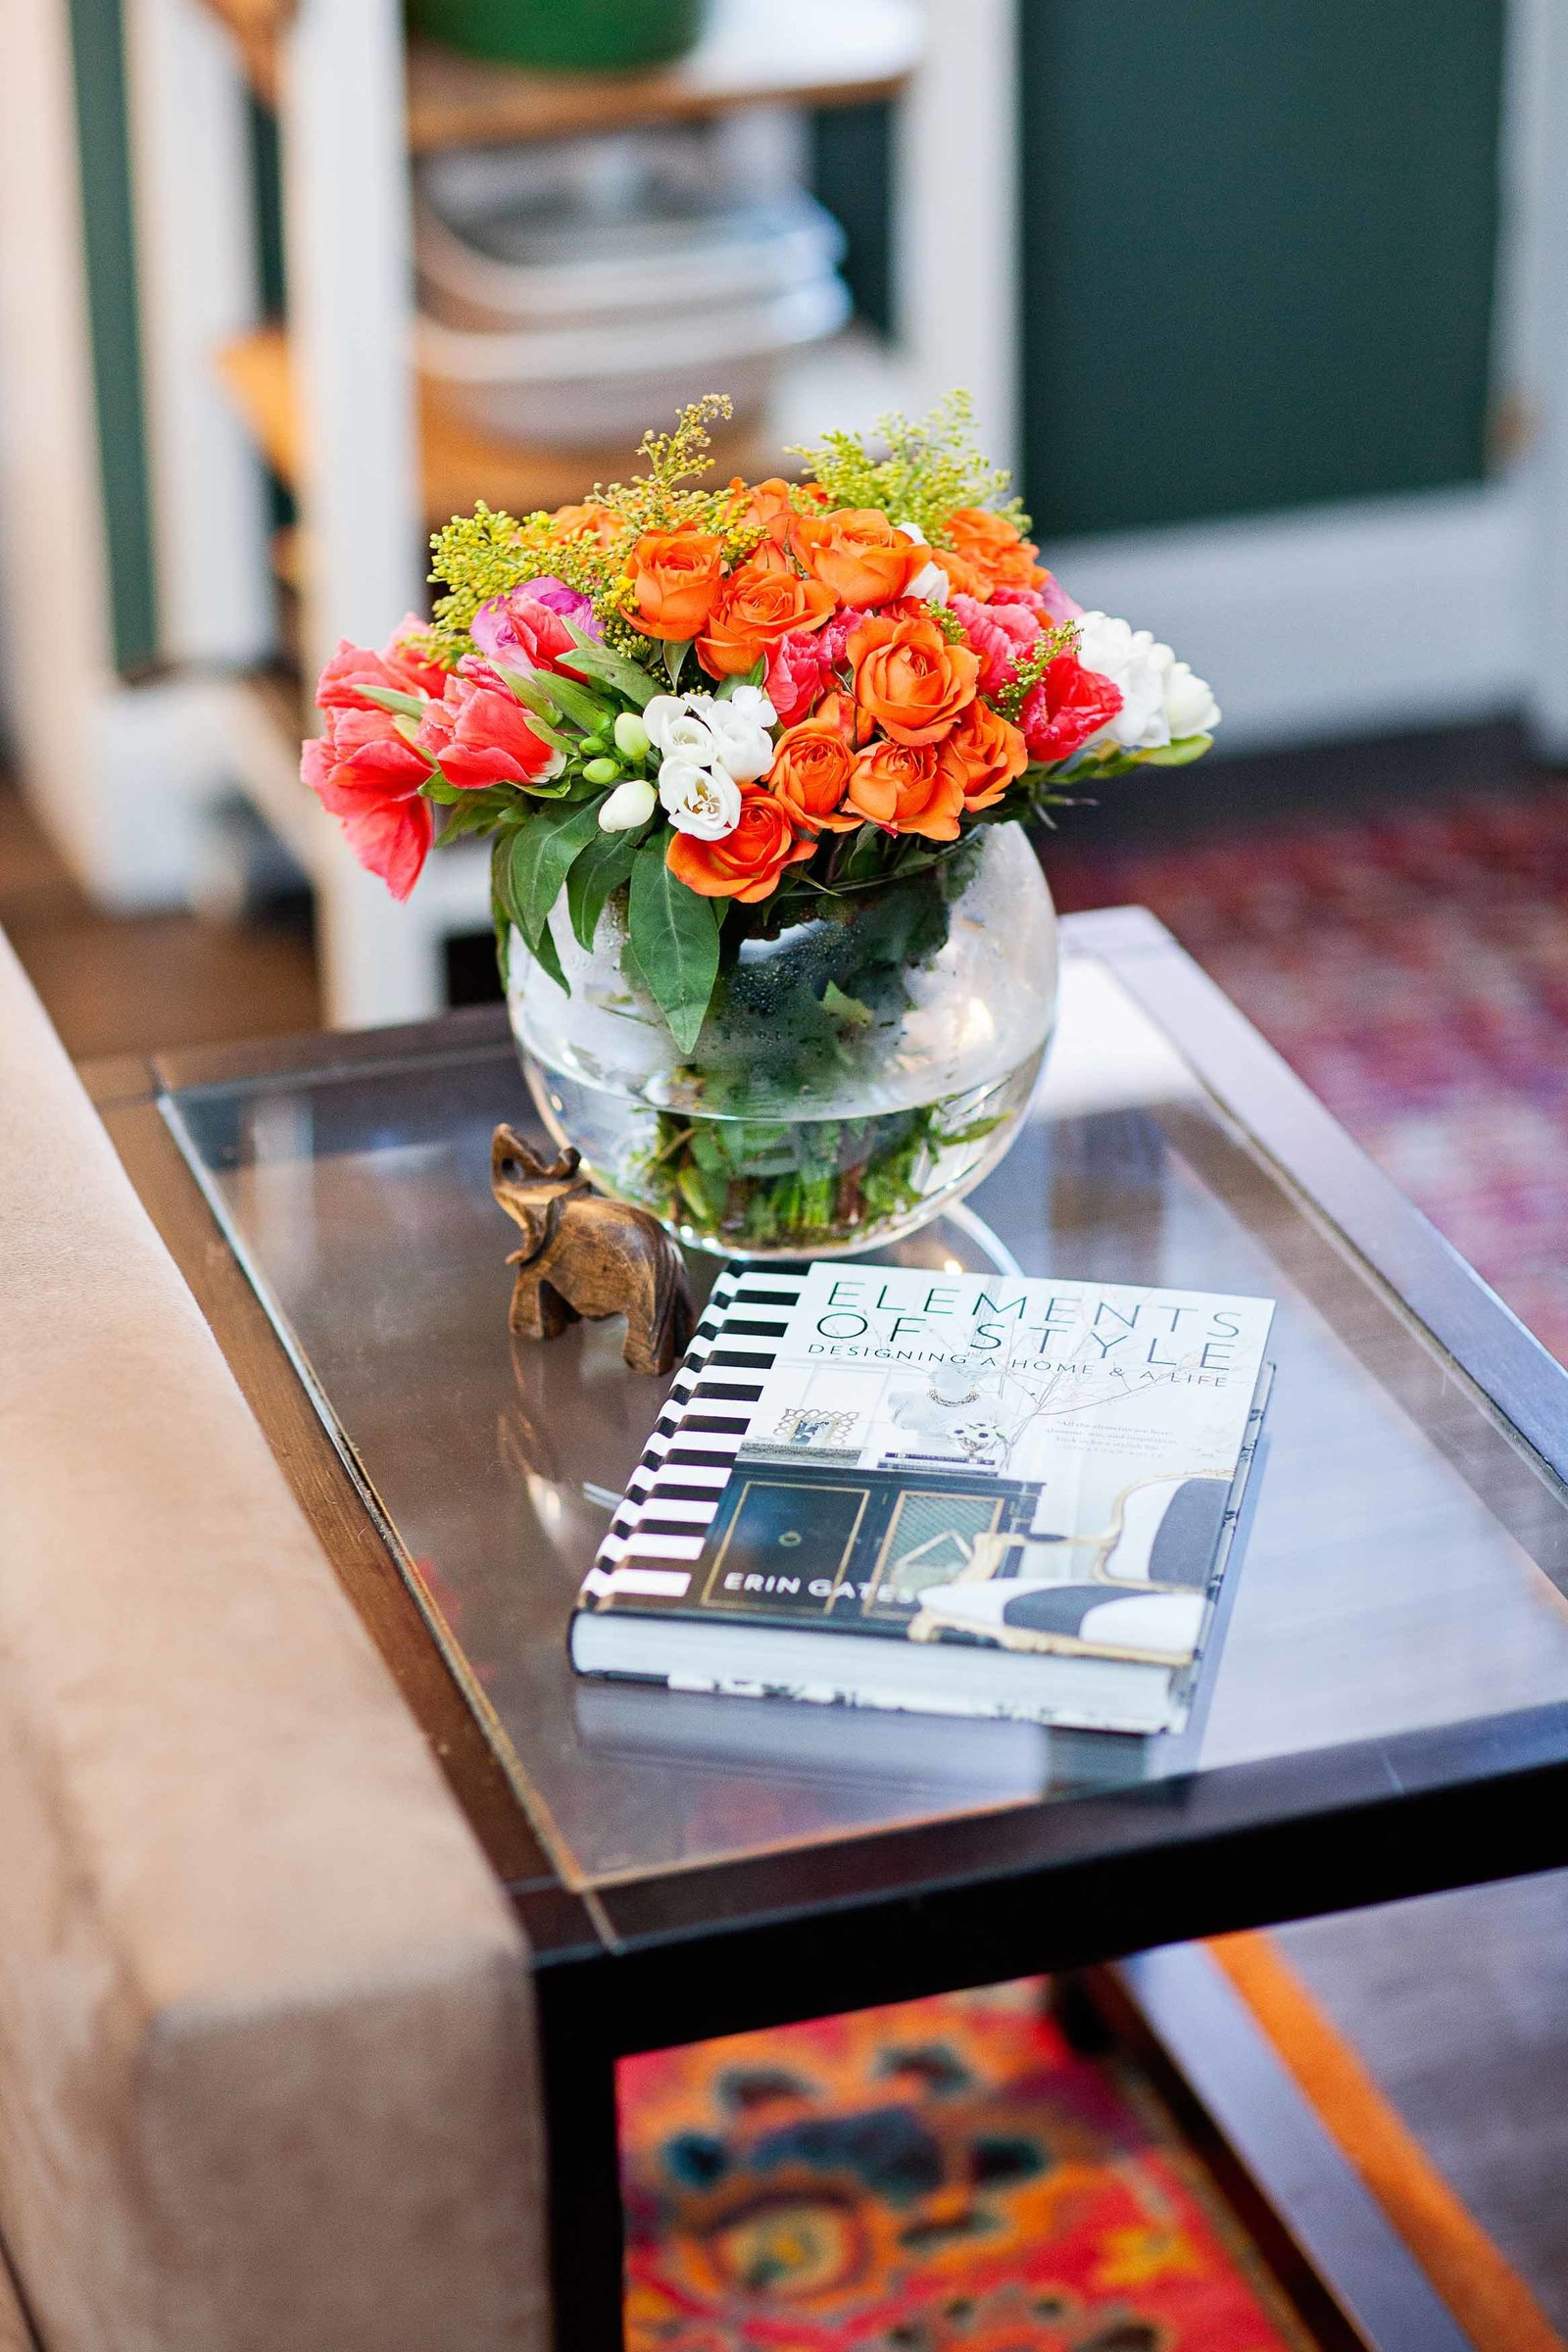 A glass end table with a book and fresh flowers.